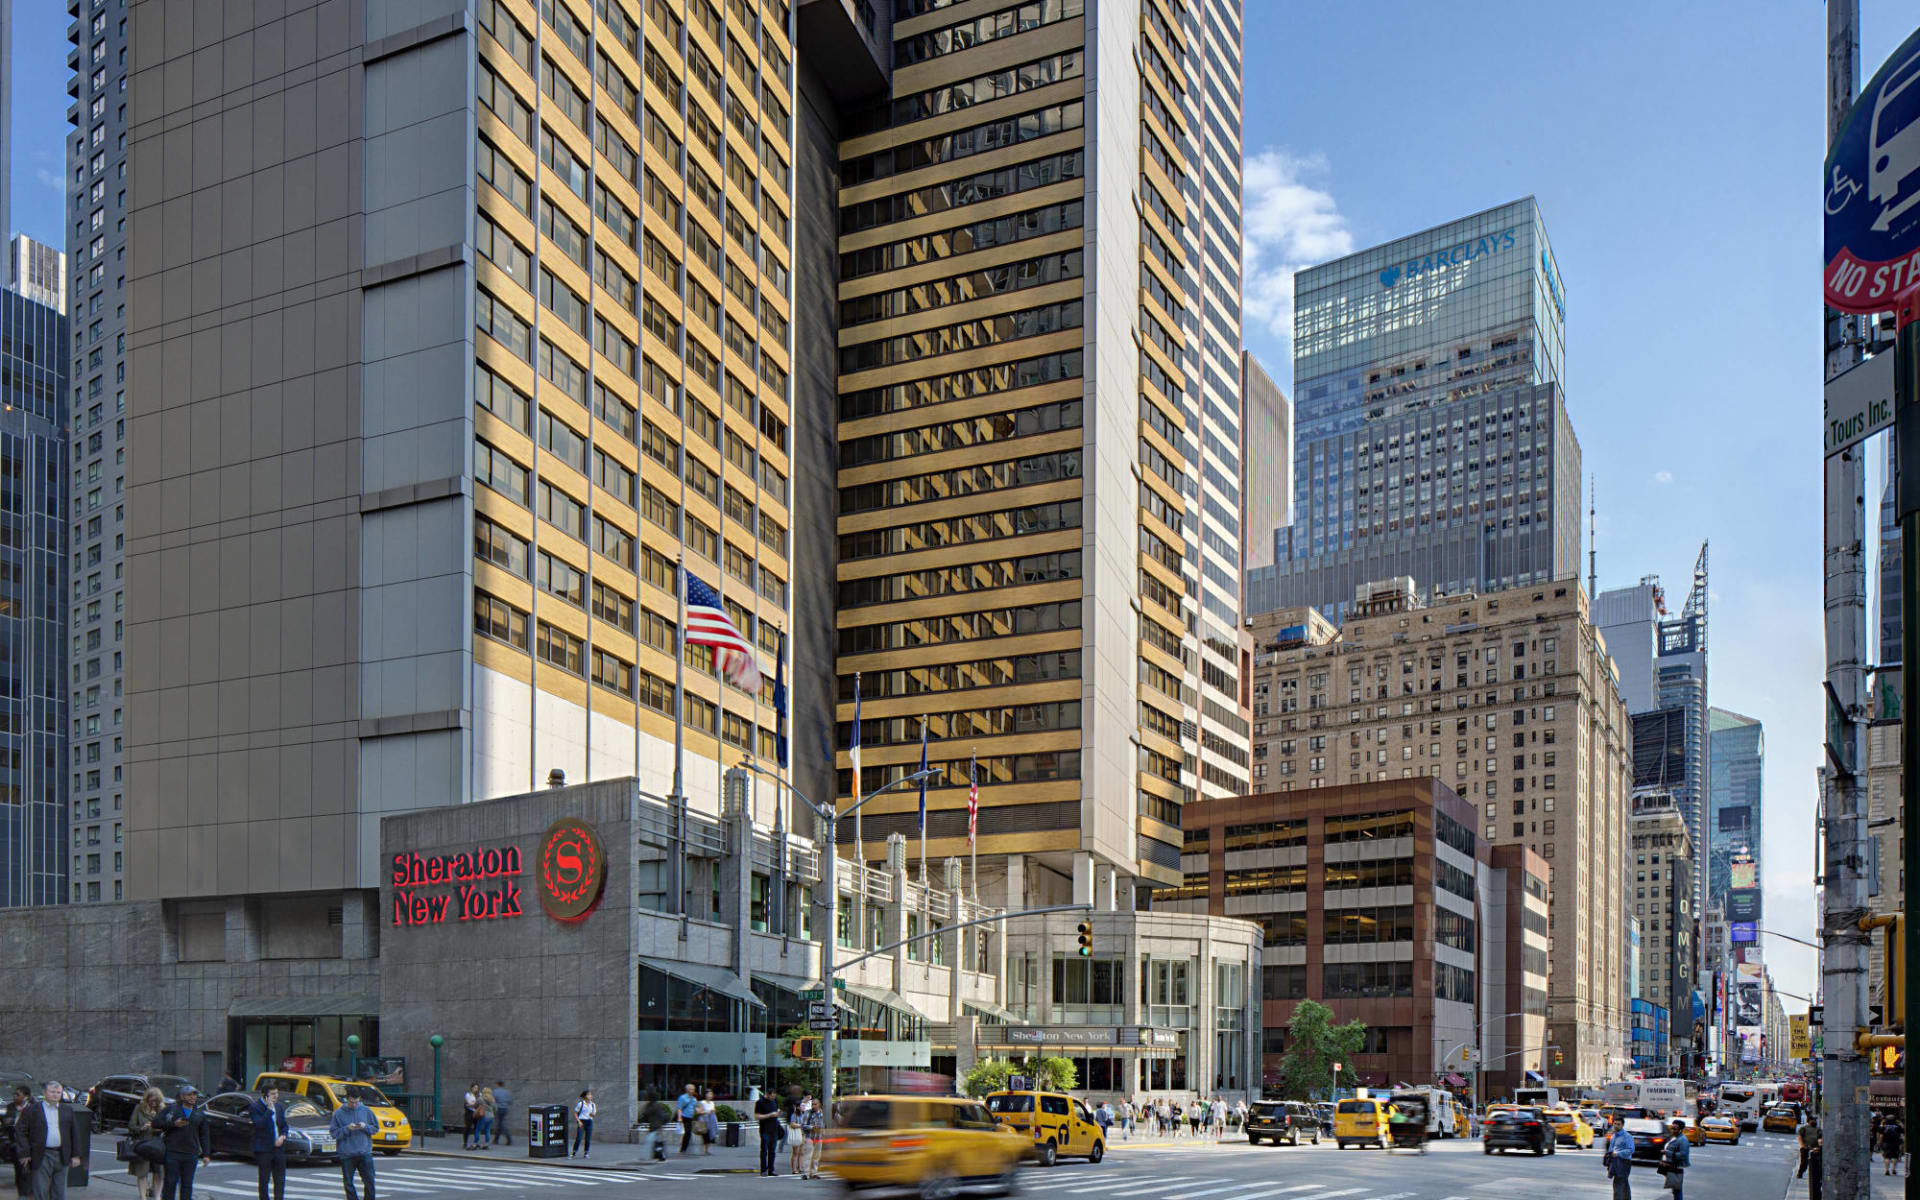 Sheraton Manhattan at Times Square in New York - Manhattan: Sheraton Times Square - Aussenansicht